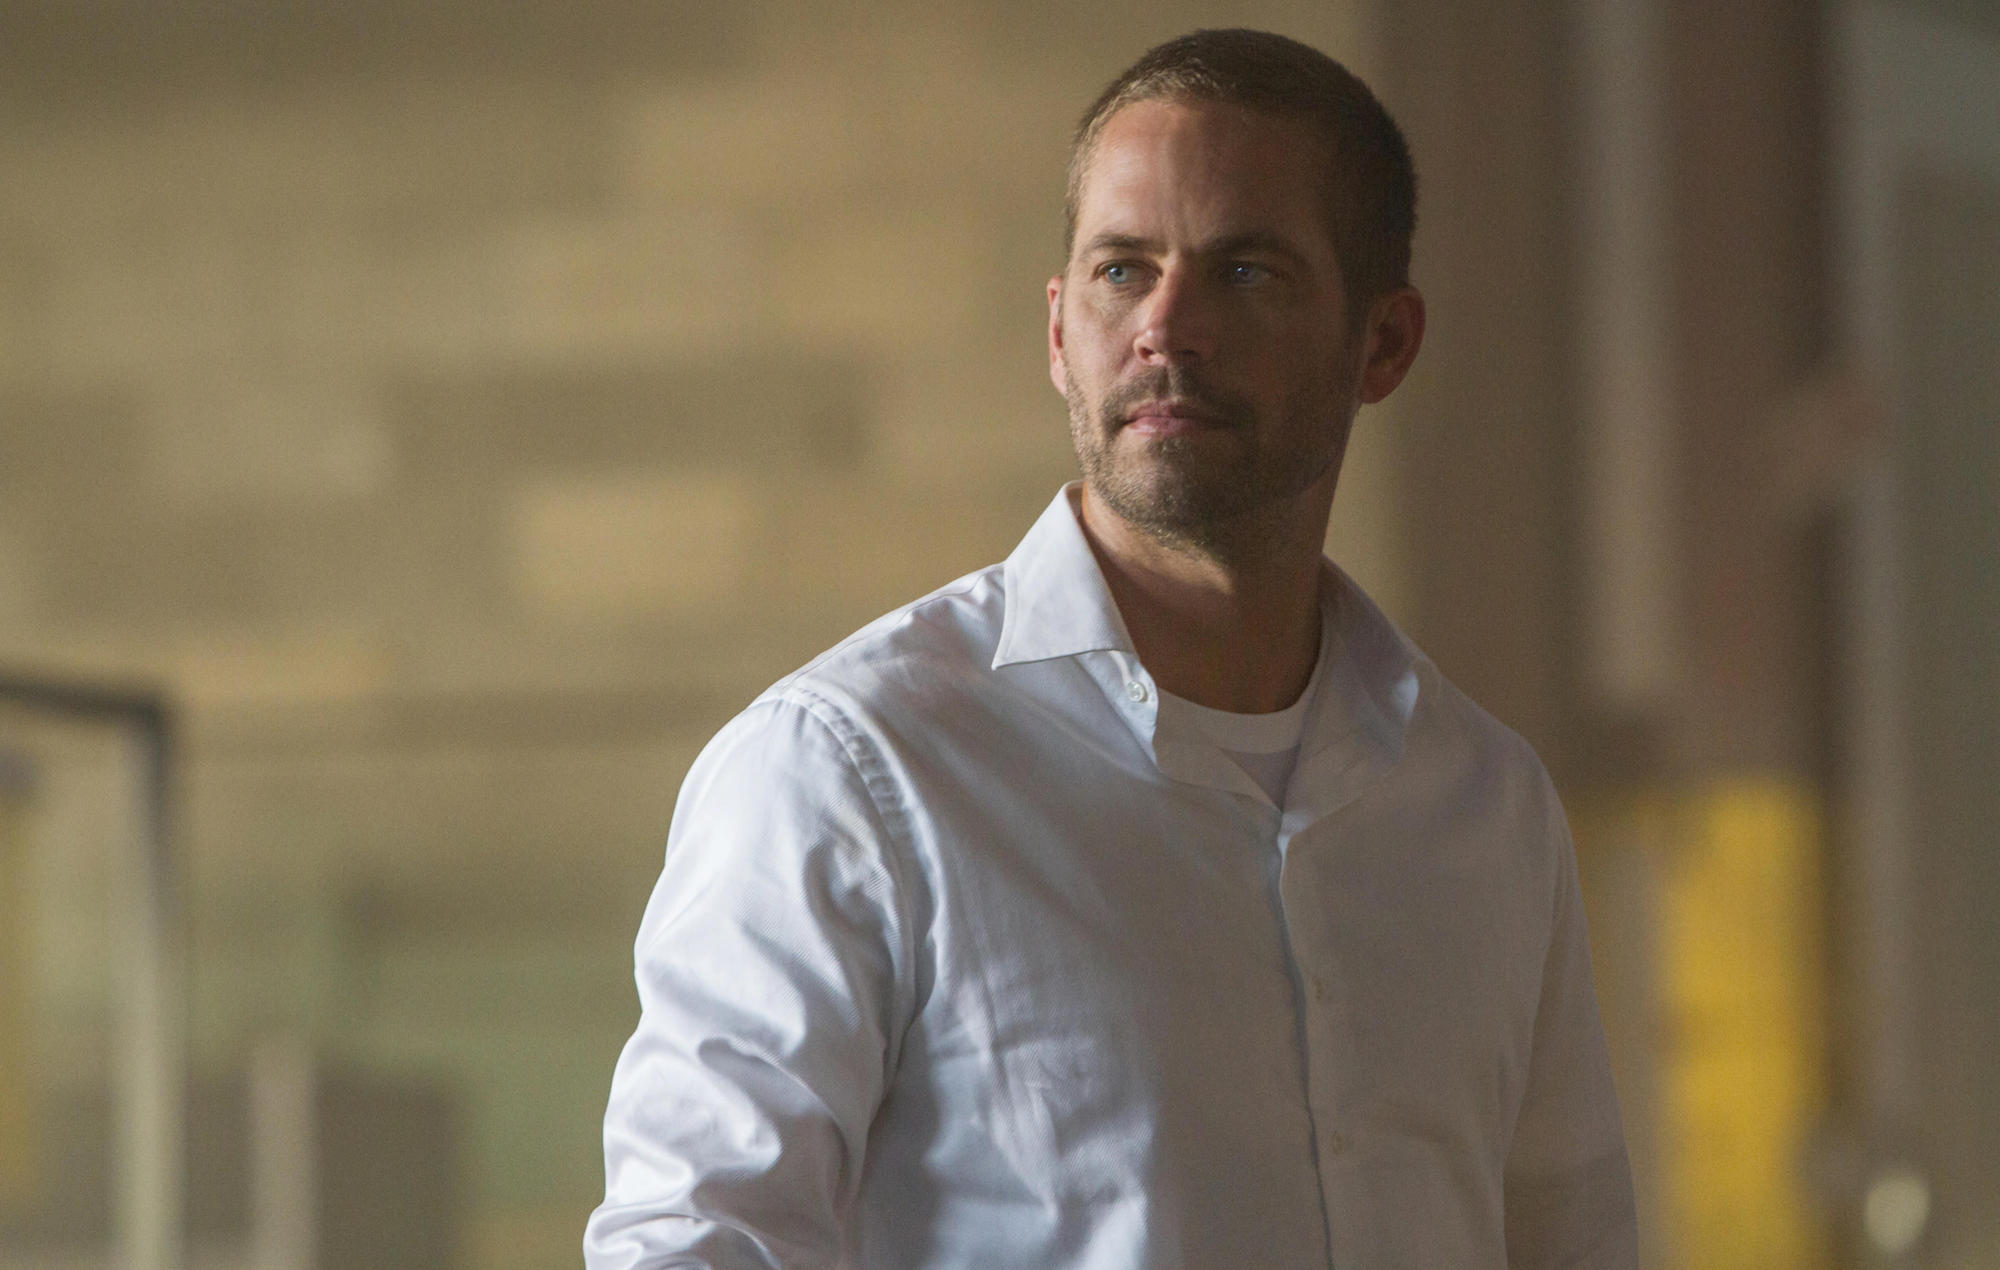 Paul Walker's character reportedly set to make cameo in 'Fast and Furious 9' six years after actor's death